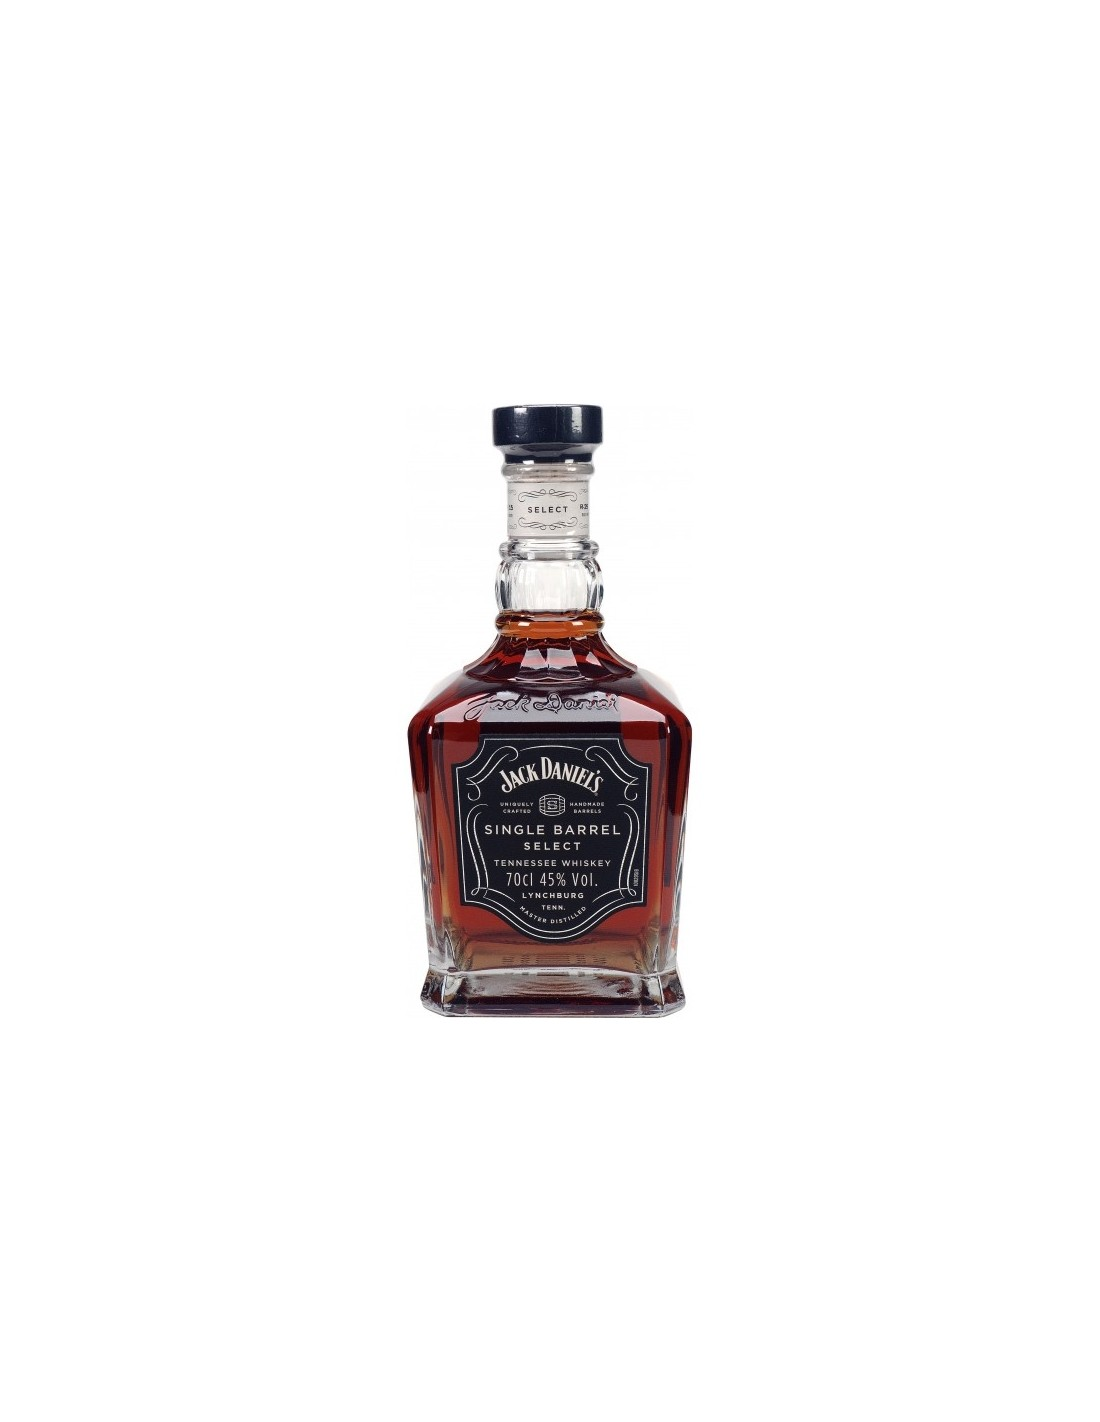 Whisky Bourbon Jack Daniel's Single Barrel, 45% alc., 0.7L, America